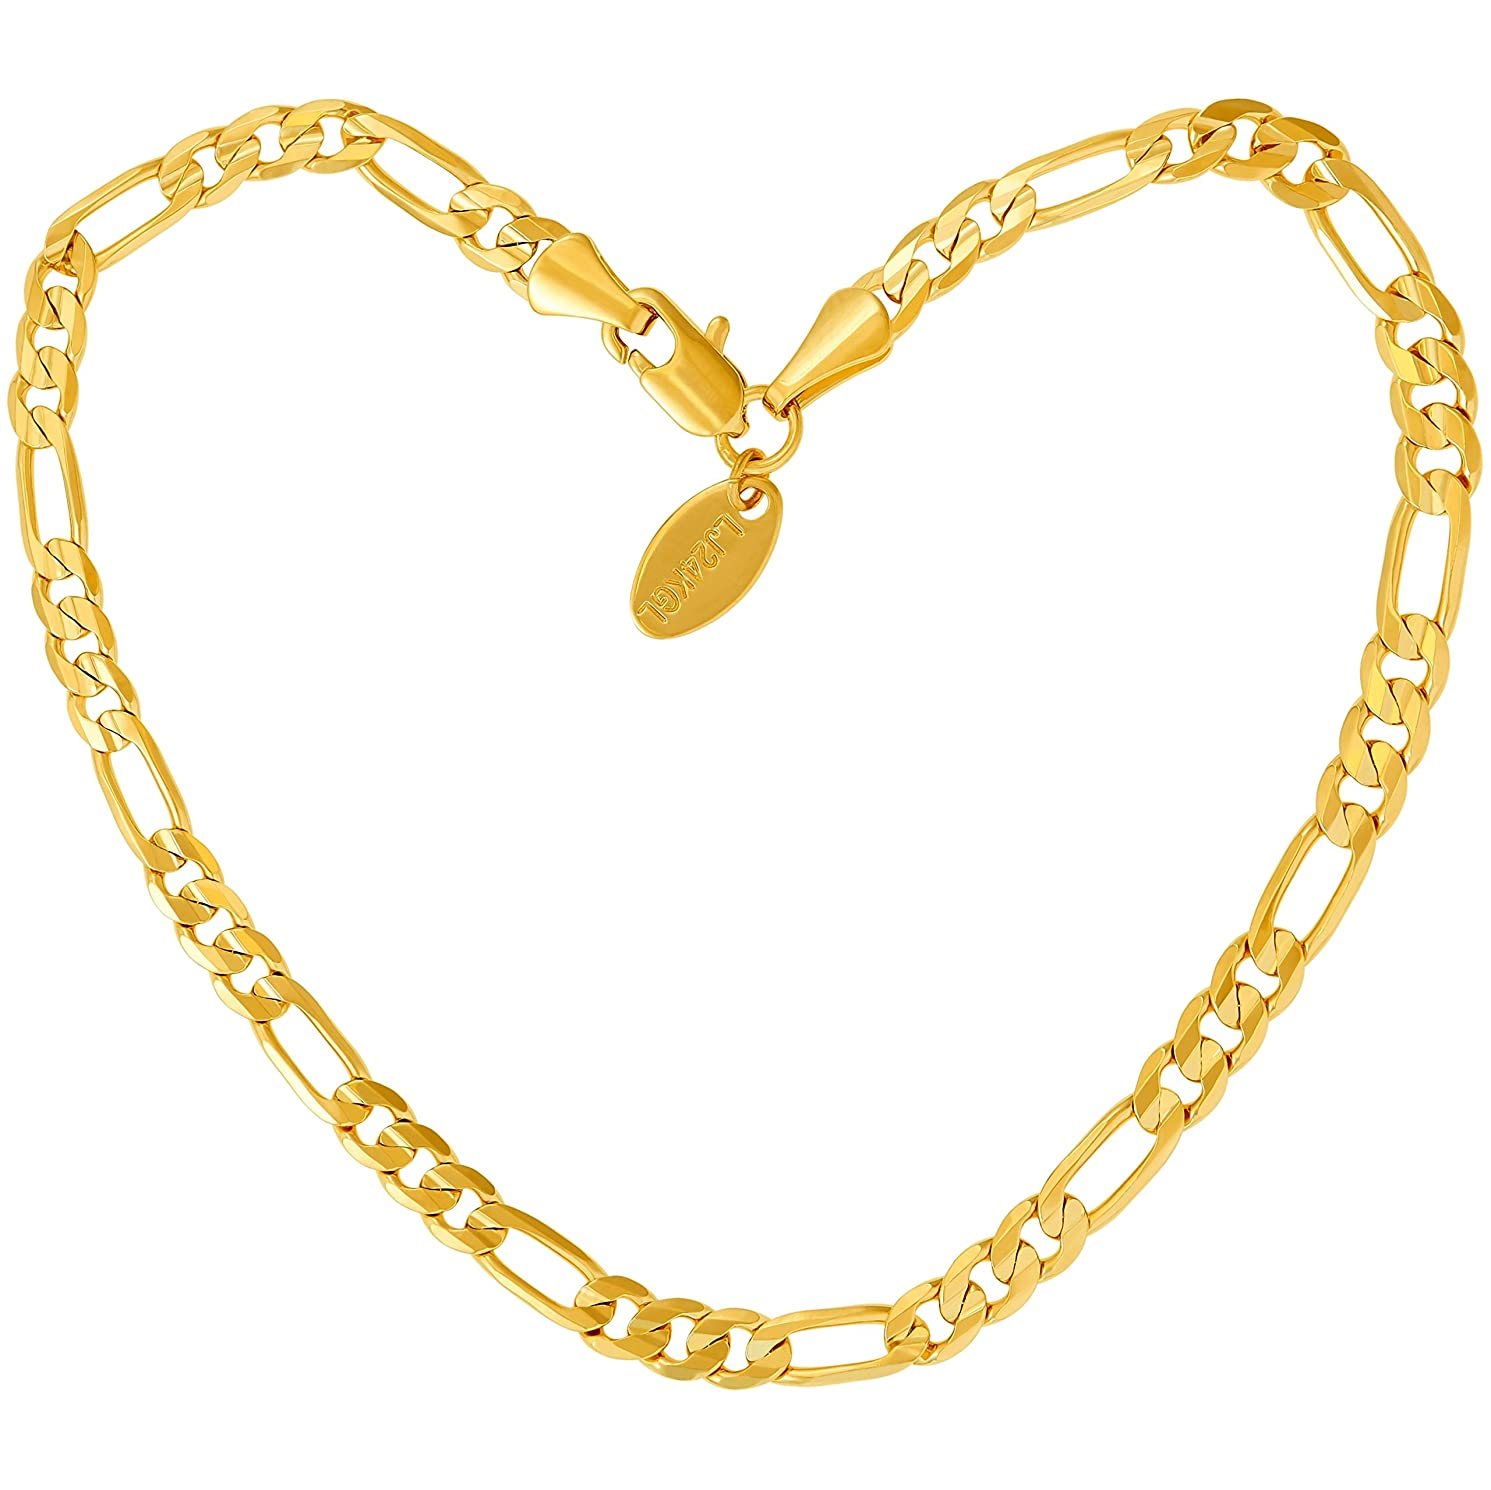 Lifetime Jewelry Gold Ankle Bracelets for Women Men & Teen Girls [ 24k Real Gold Plated 4mm Figaro Chain Anklet ] Beach or Party Foot Jewelry with Free Lifetime Replacement Guarantee 9